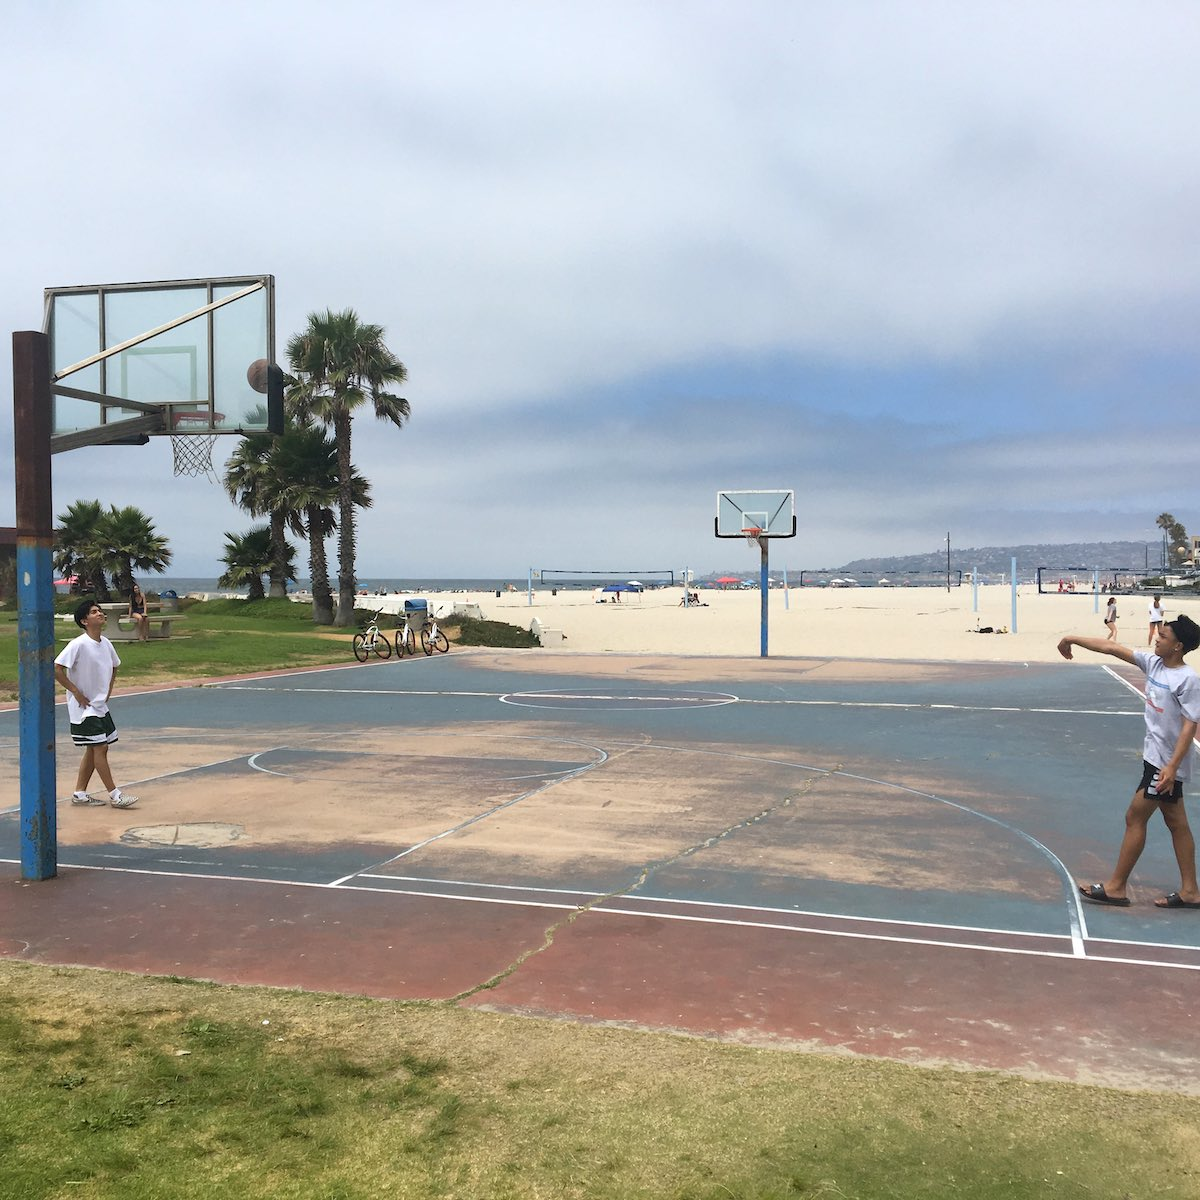 San Diego BIG - Basketball courts need repair